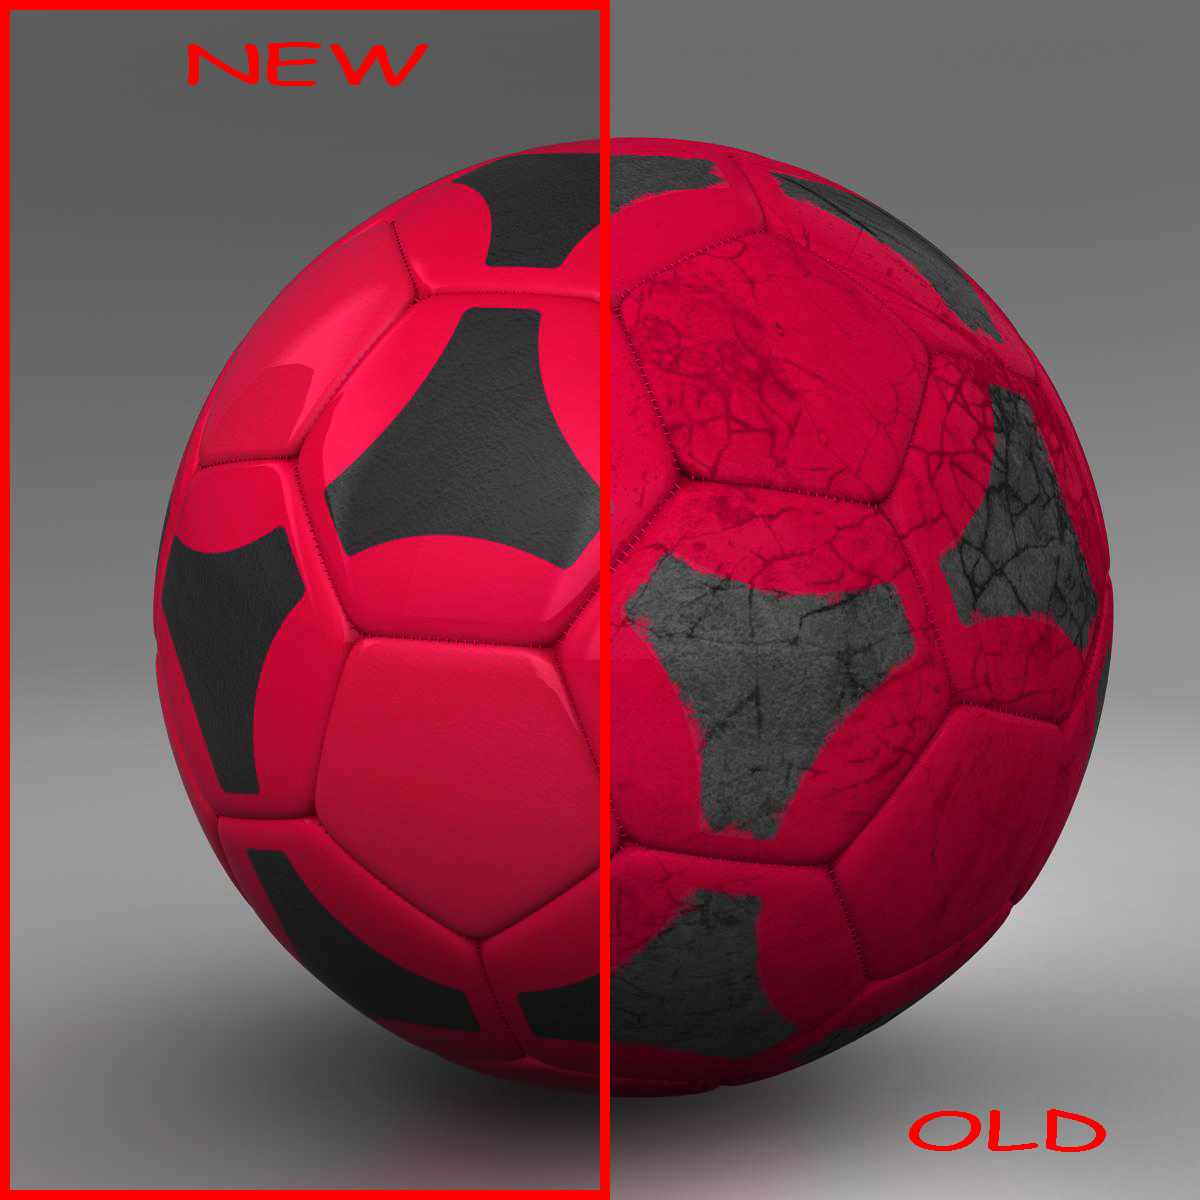 soccerball red black 3d model 3ds max fbx c4d ma mb obj 204548